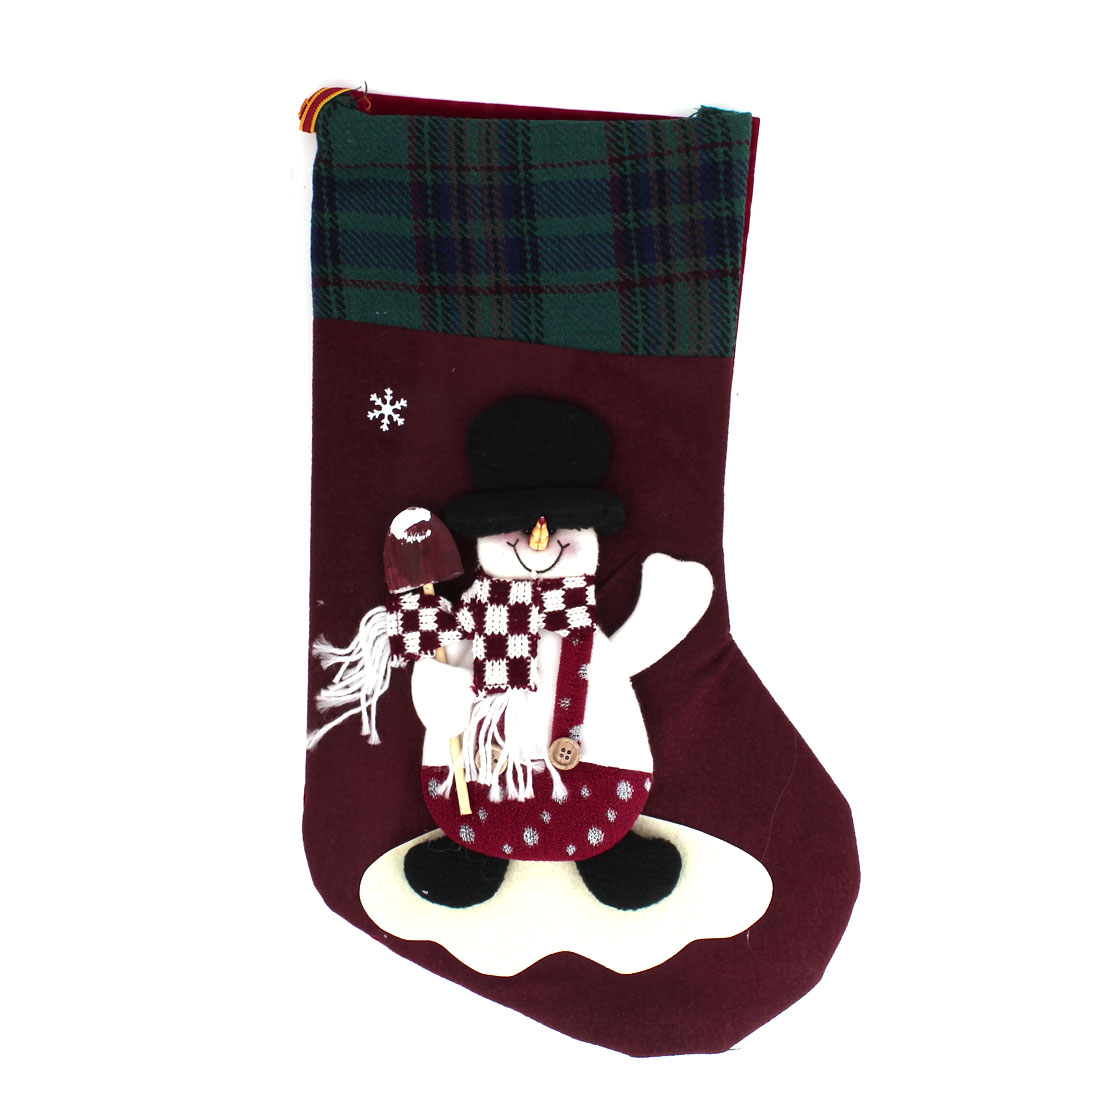 27cm x 43cm Xmas Snowman Detail Felt Christmas Stocking Gift Holder Burgundy Green